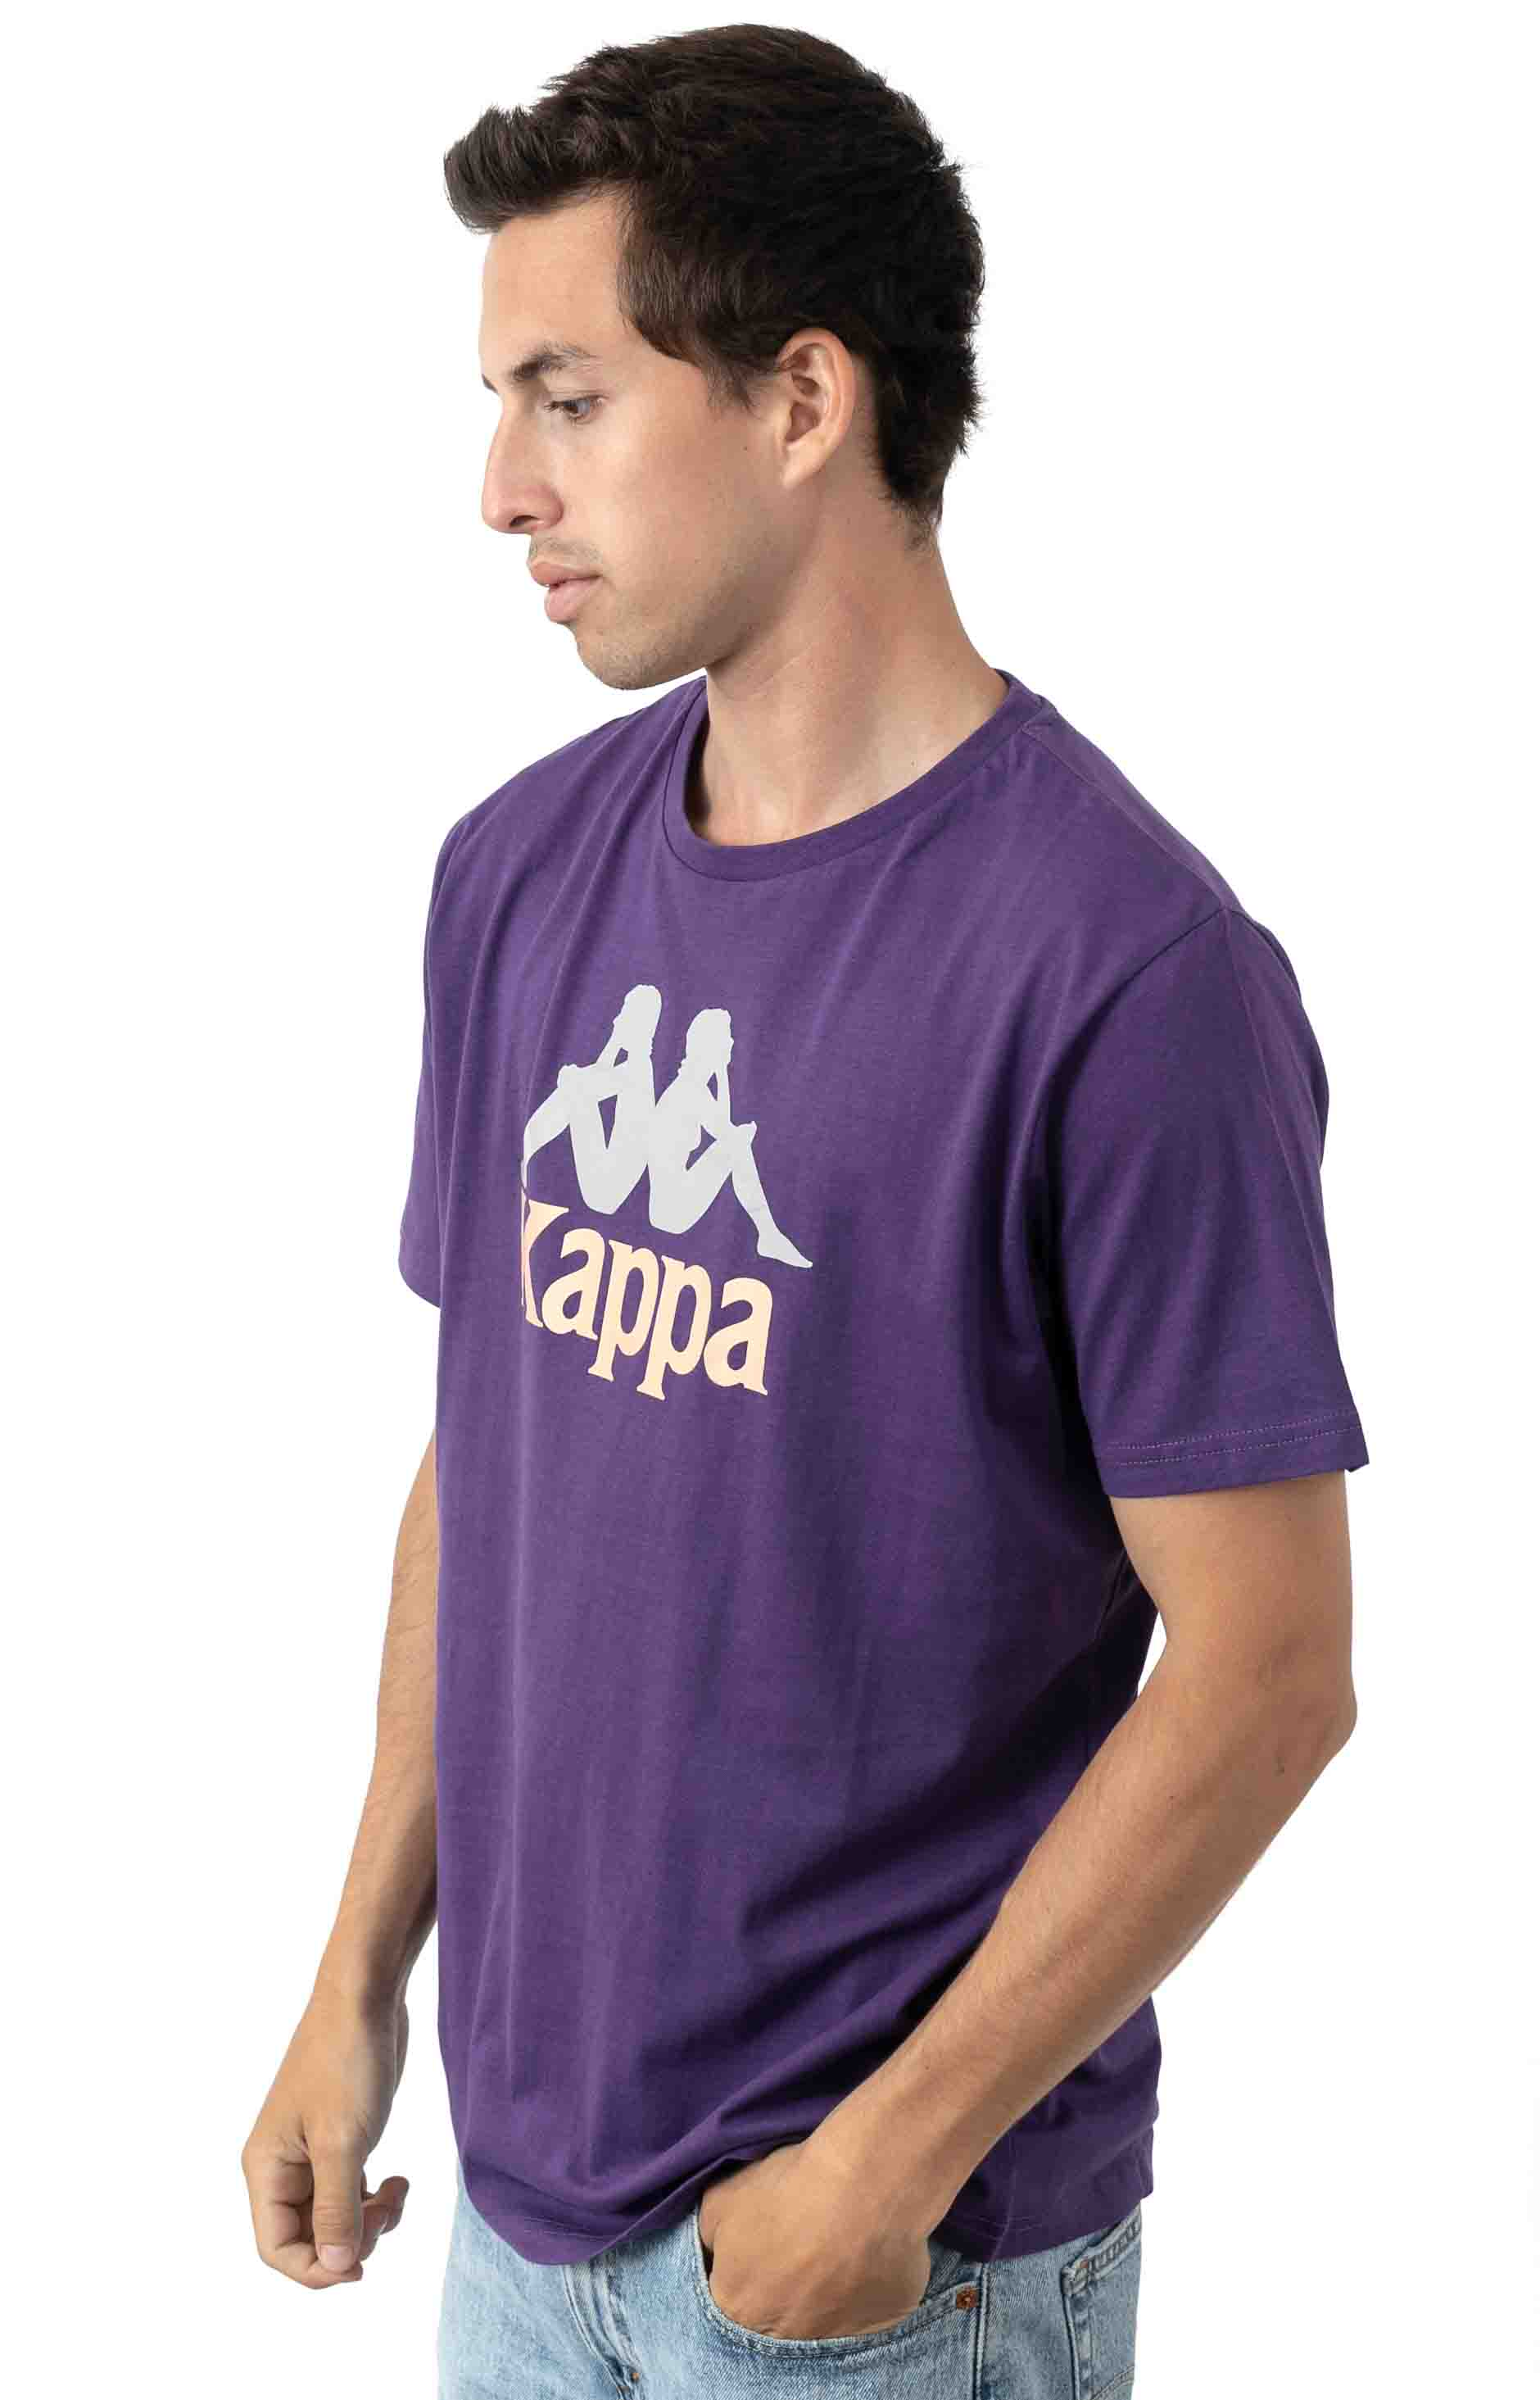 222 Authentic Dris T-Shirt - Violet/Brandy Grey/Reflect 2